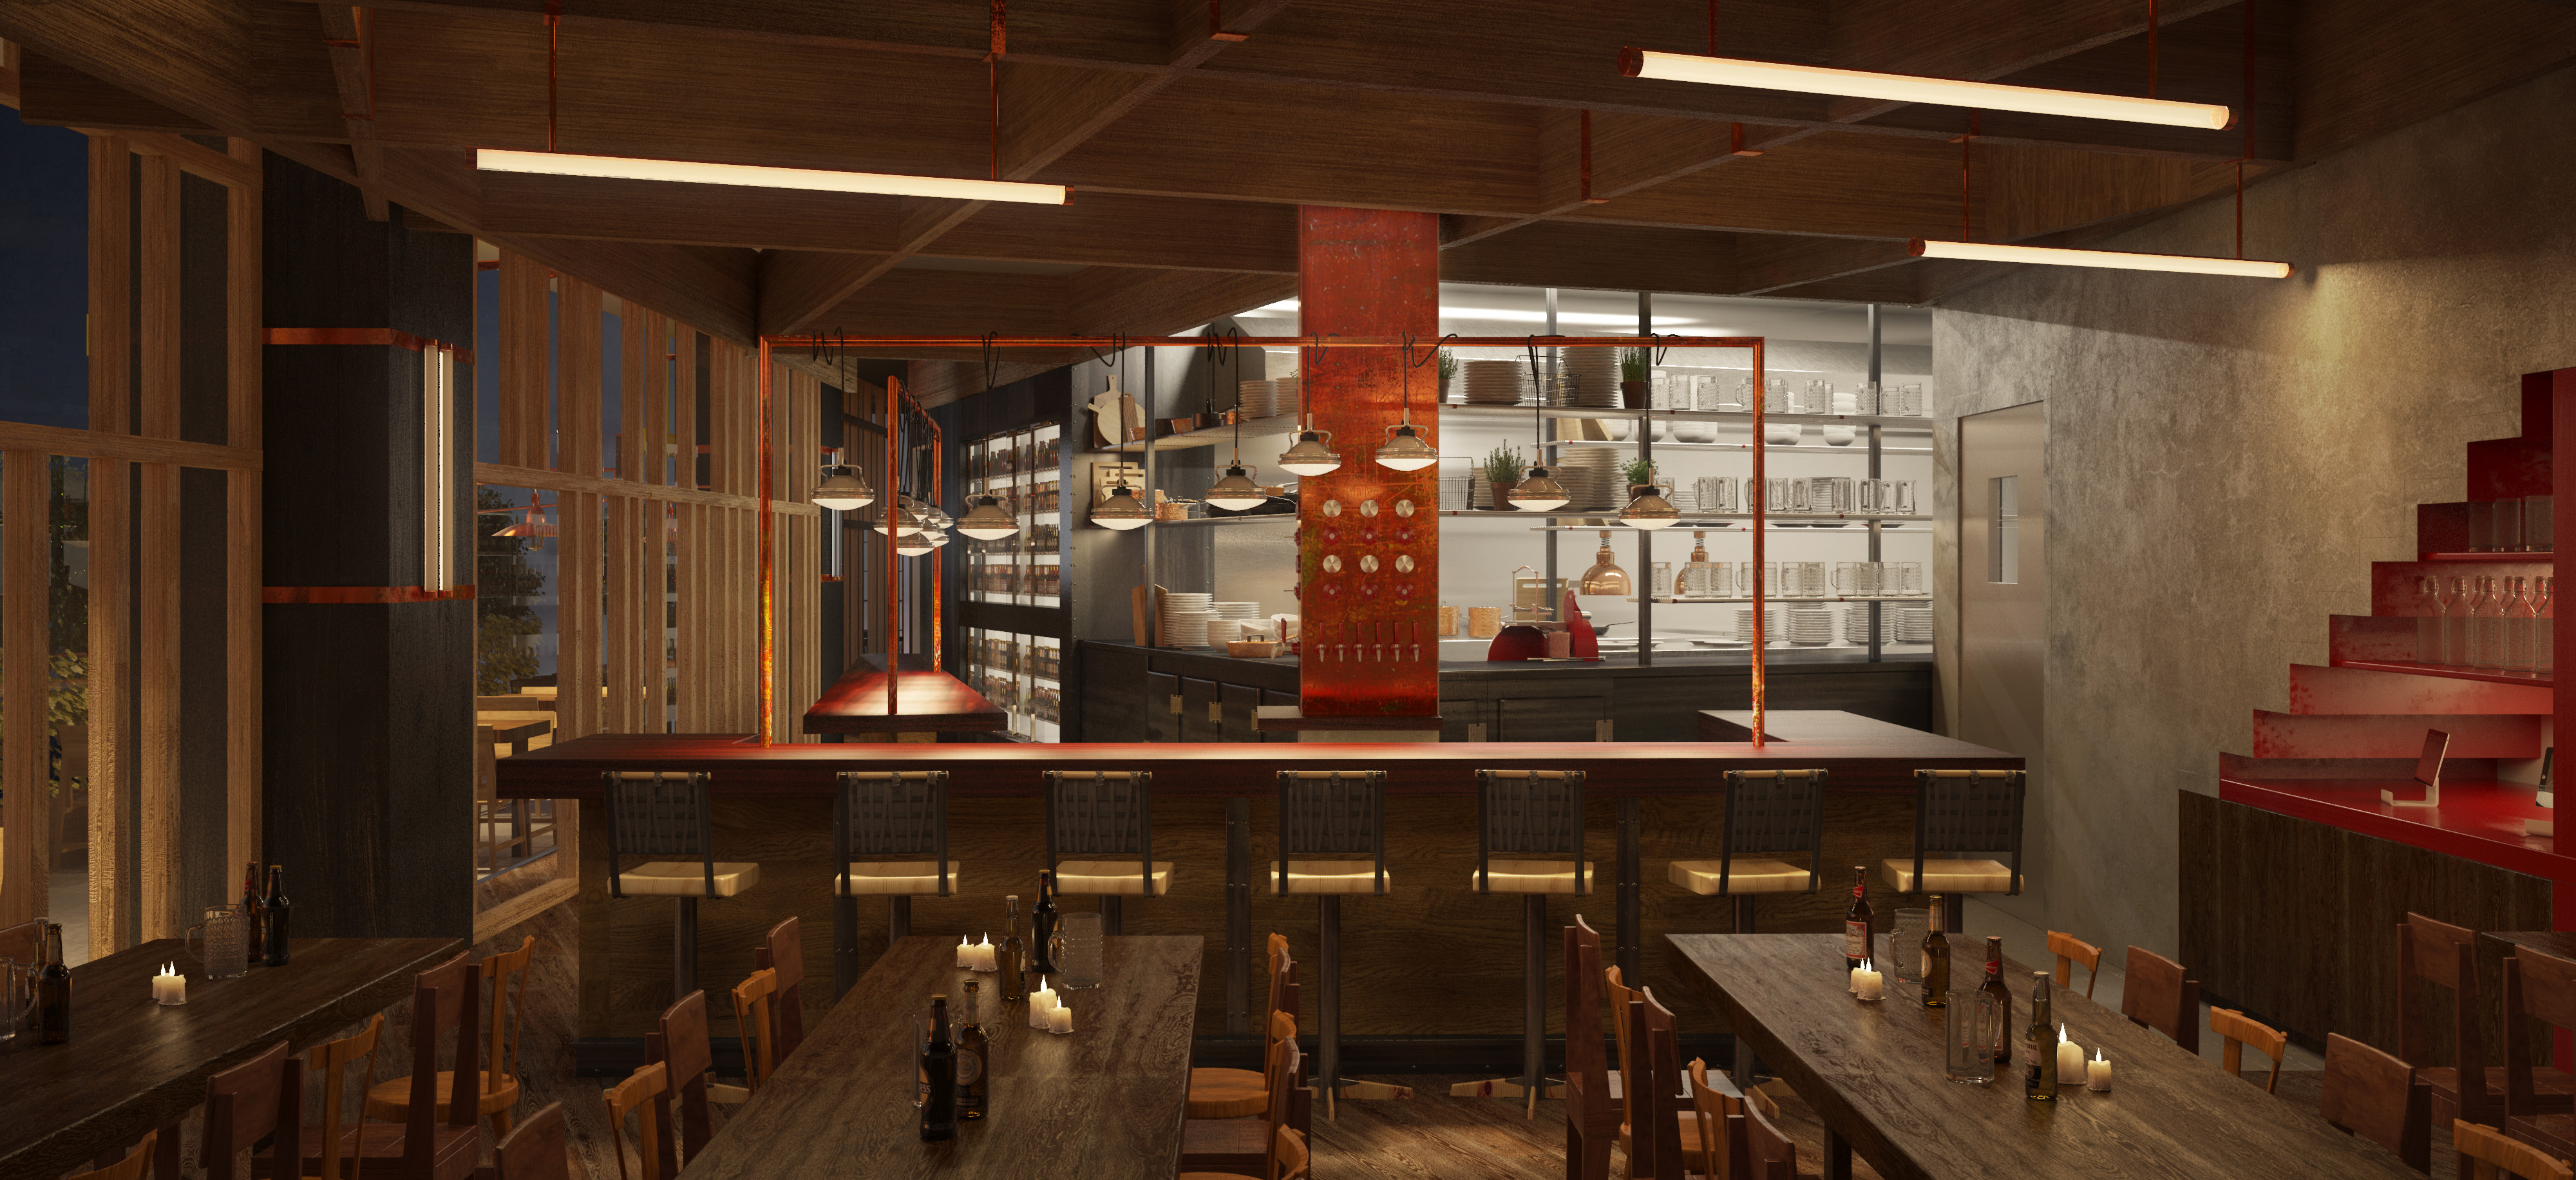 The Cannibal Culver City Rendering